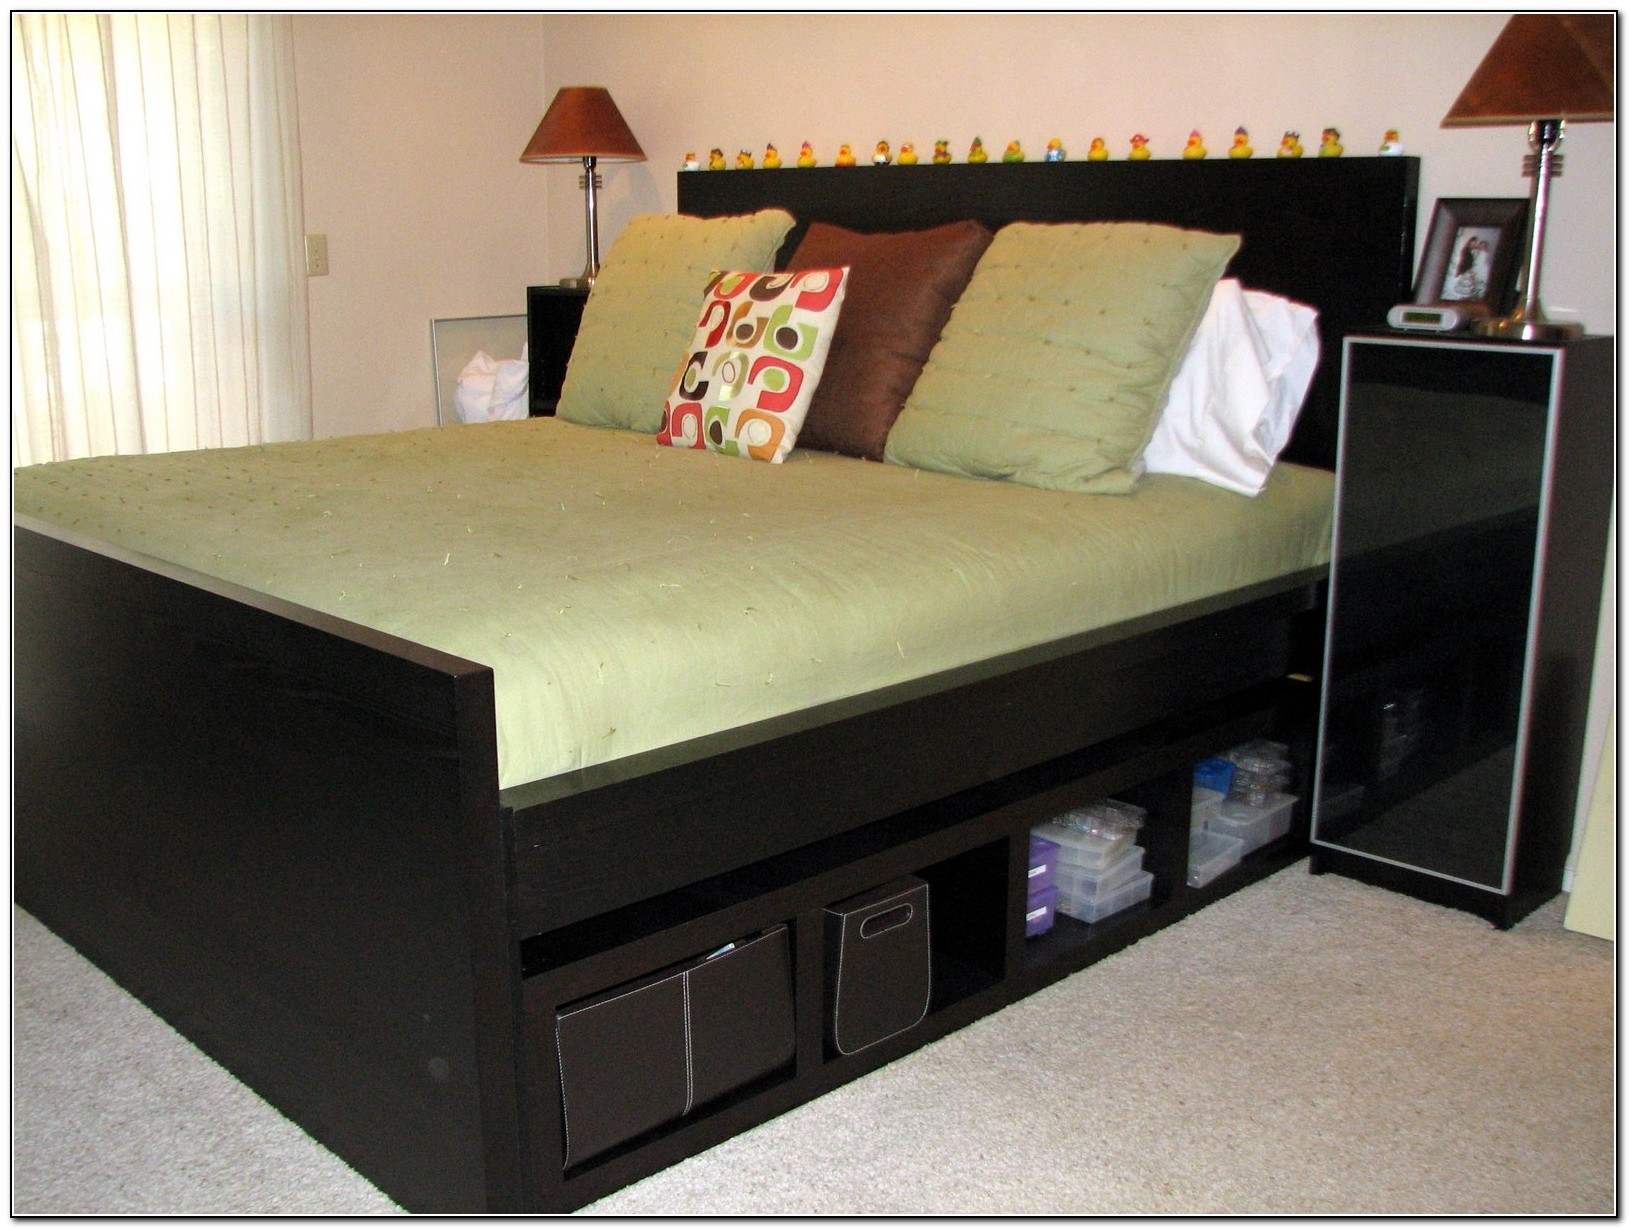 ikea malm bed hack download page home design ideas galleries home design ideas guide. Black Bedroom Furniture Sets. Home Design Ideas